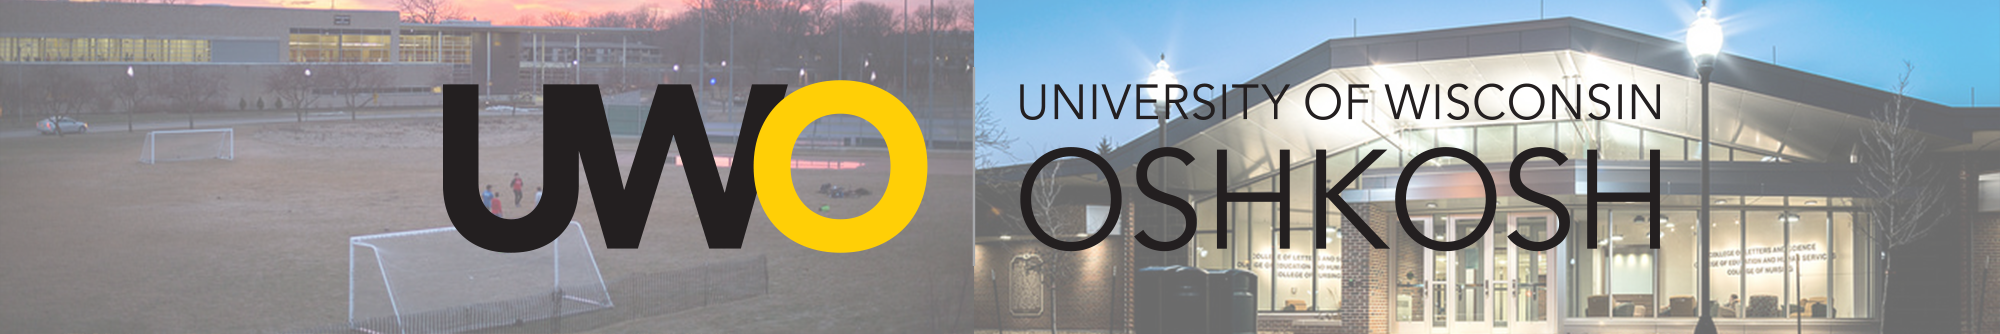 University of Wisconsin - Oshkosh | Ticketing